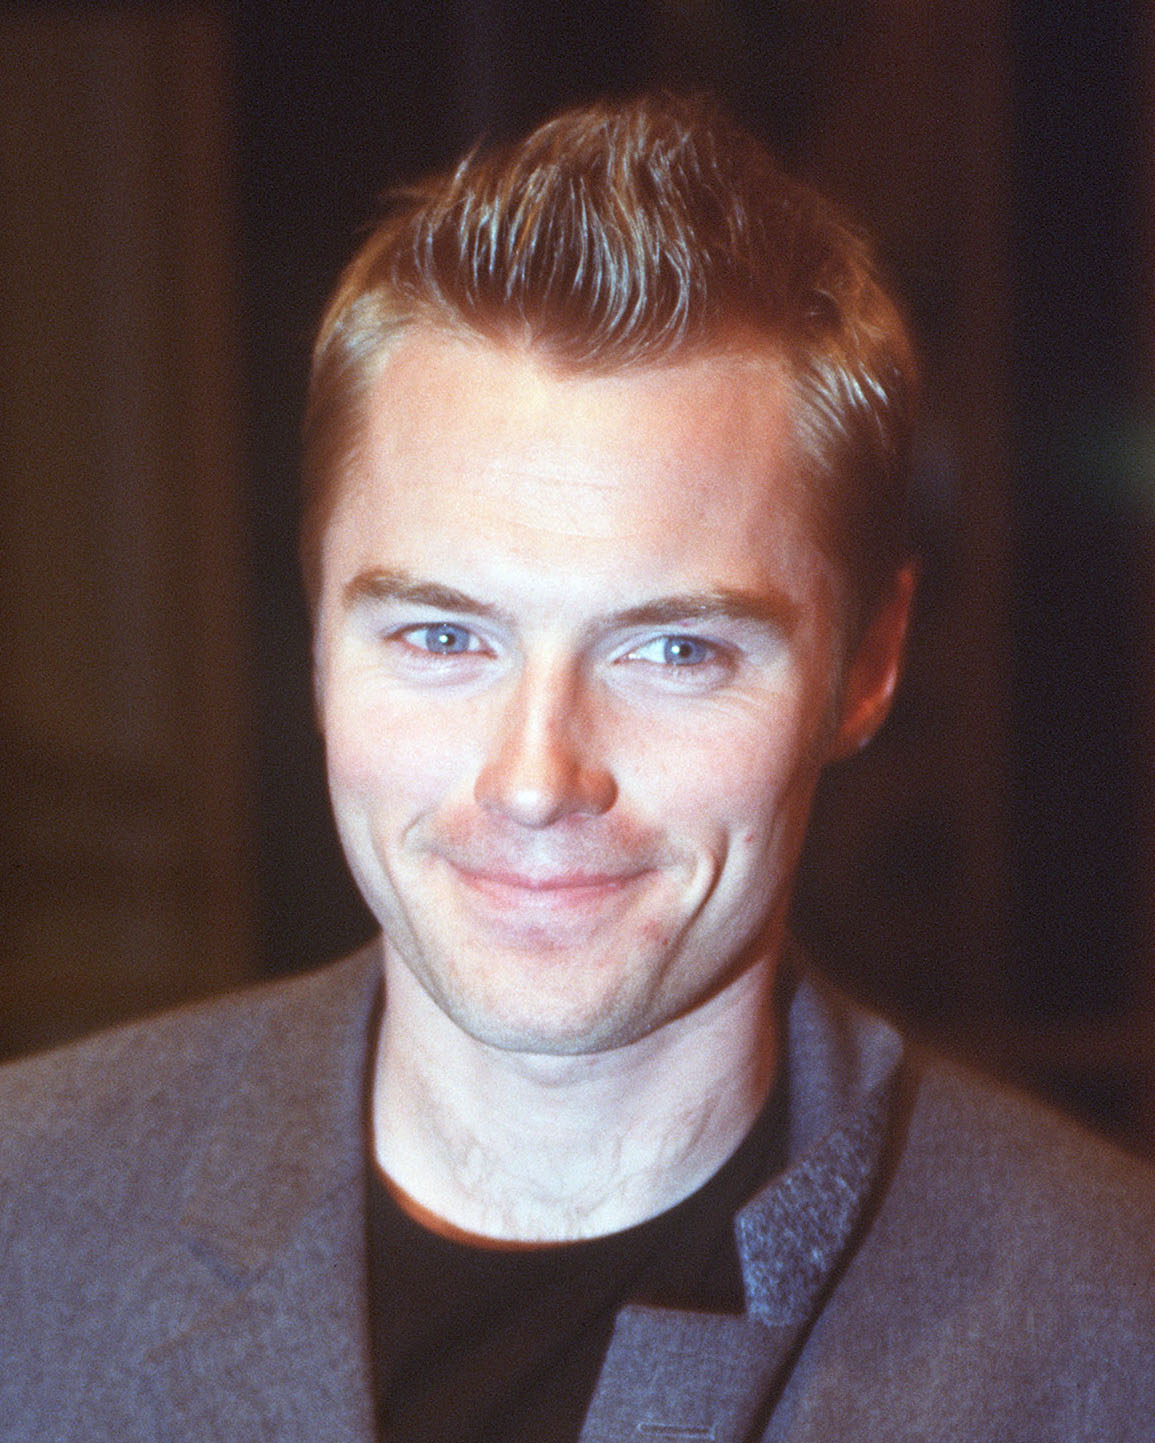 headshot portrait photo ronan keating